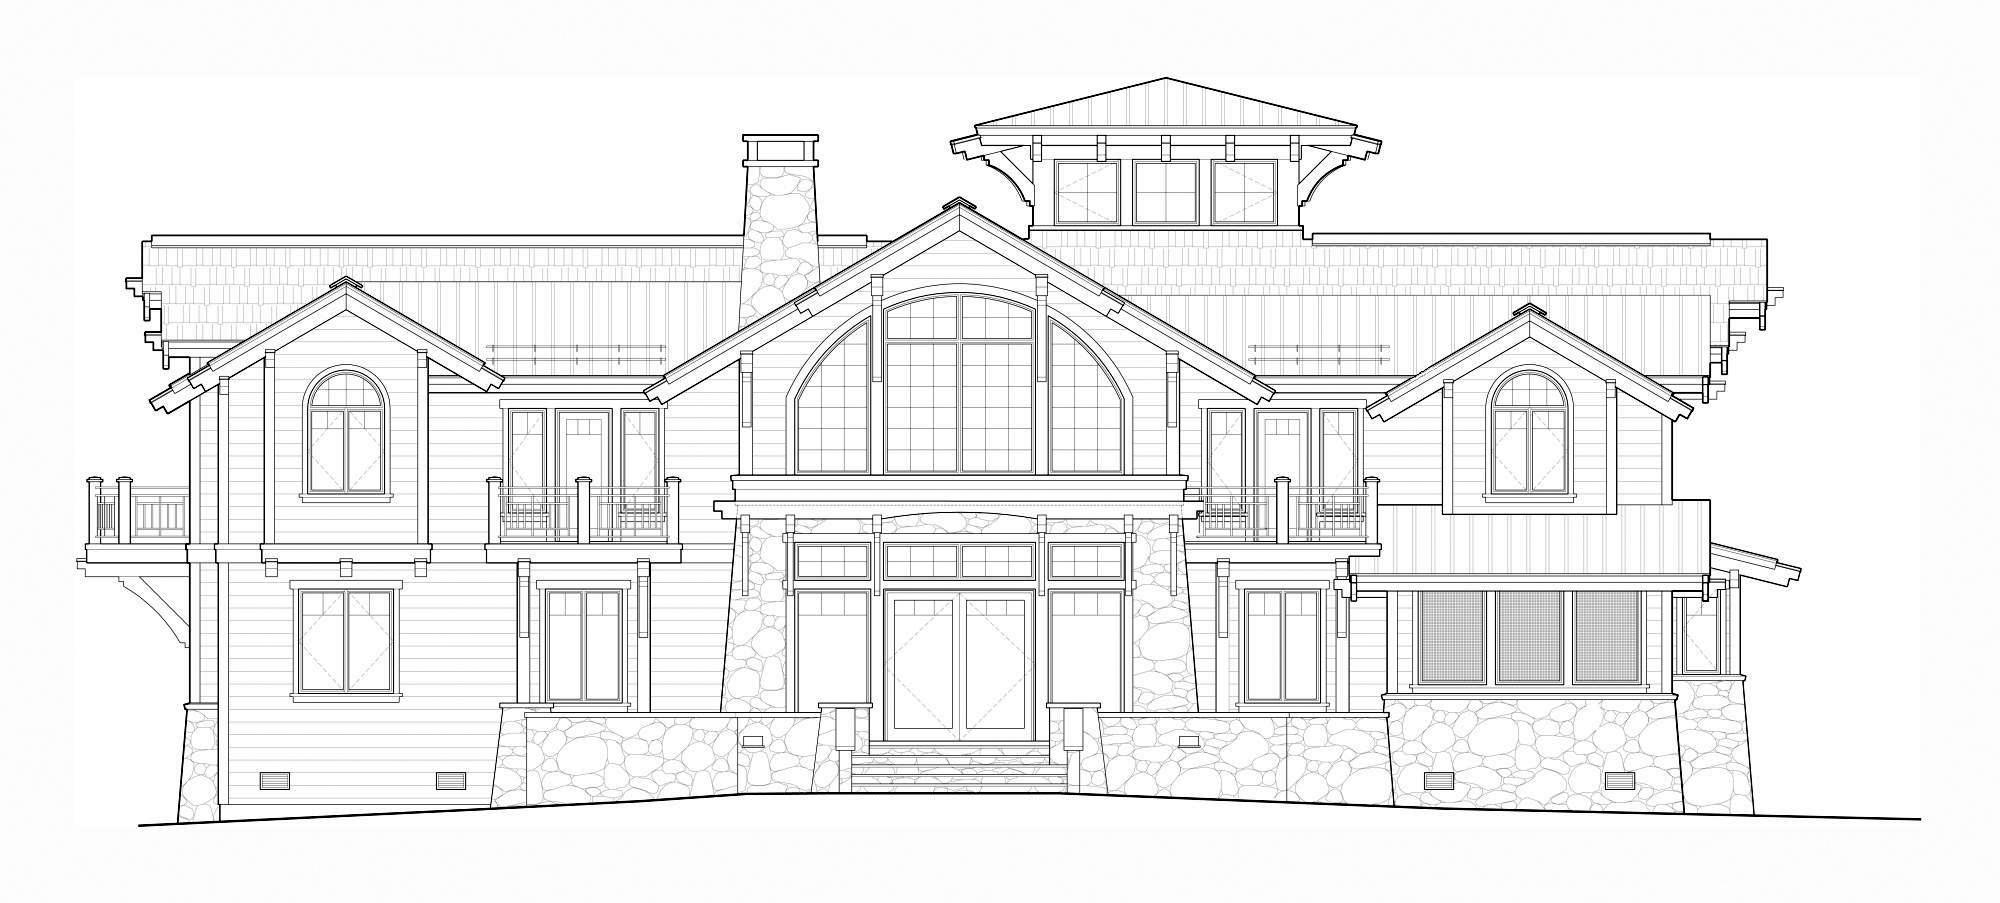 Elevation Plan In Autocad : Idaho mountain architects hendricks architecture